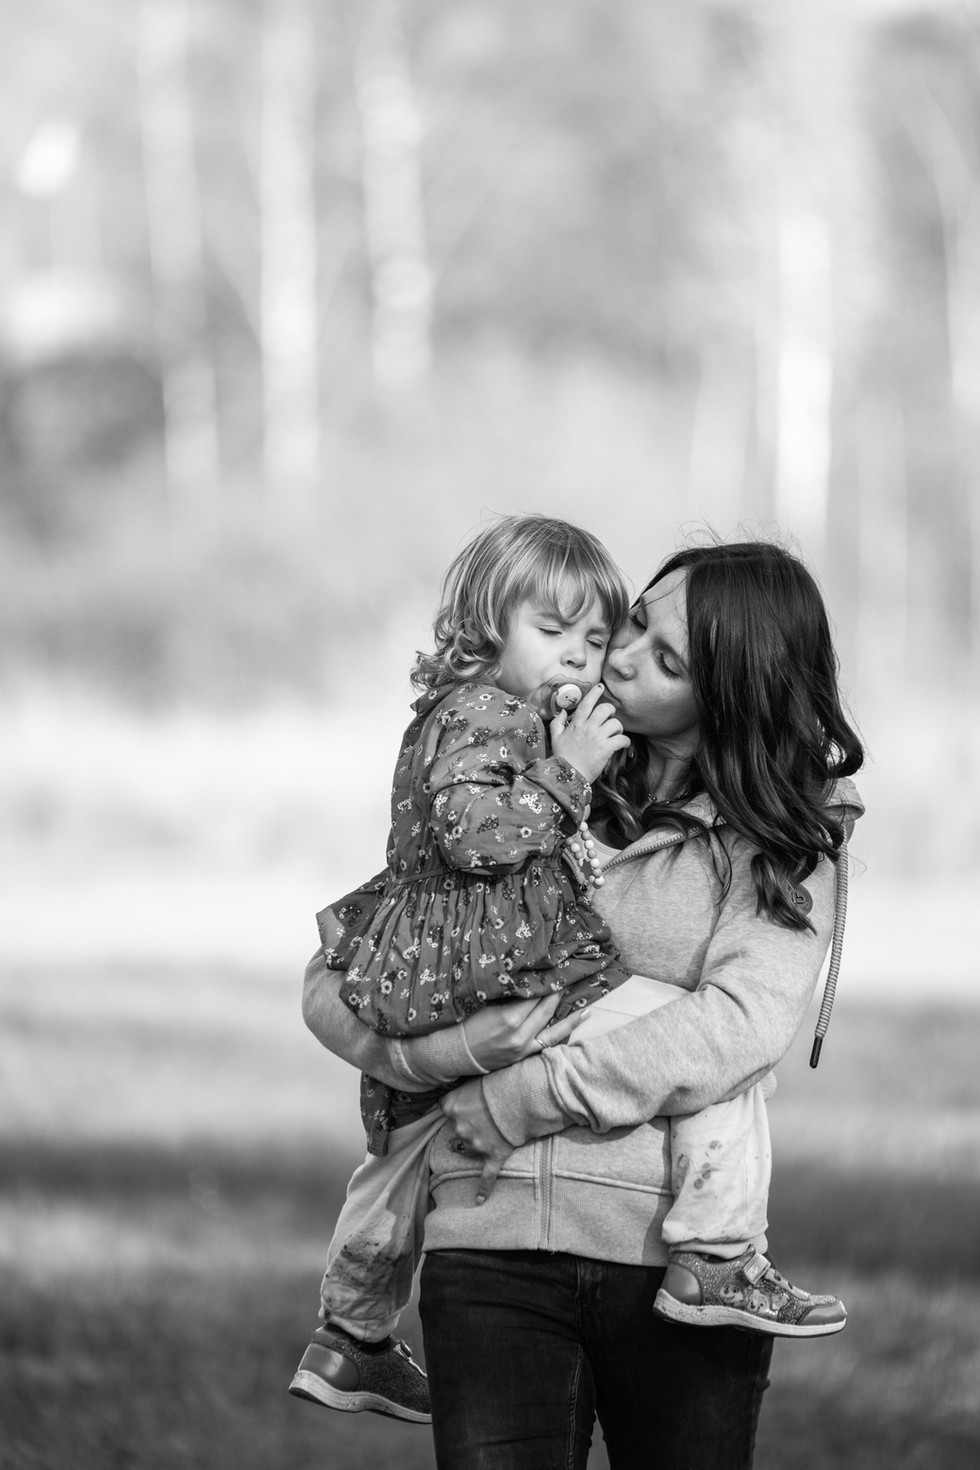 Mami & Tochter Familienshooting Herbst 0